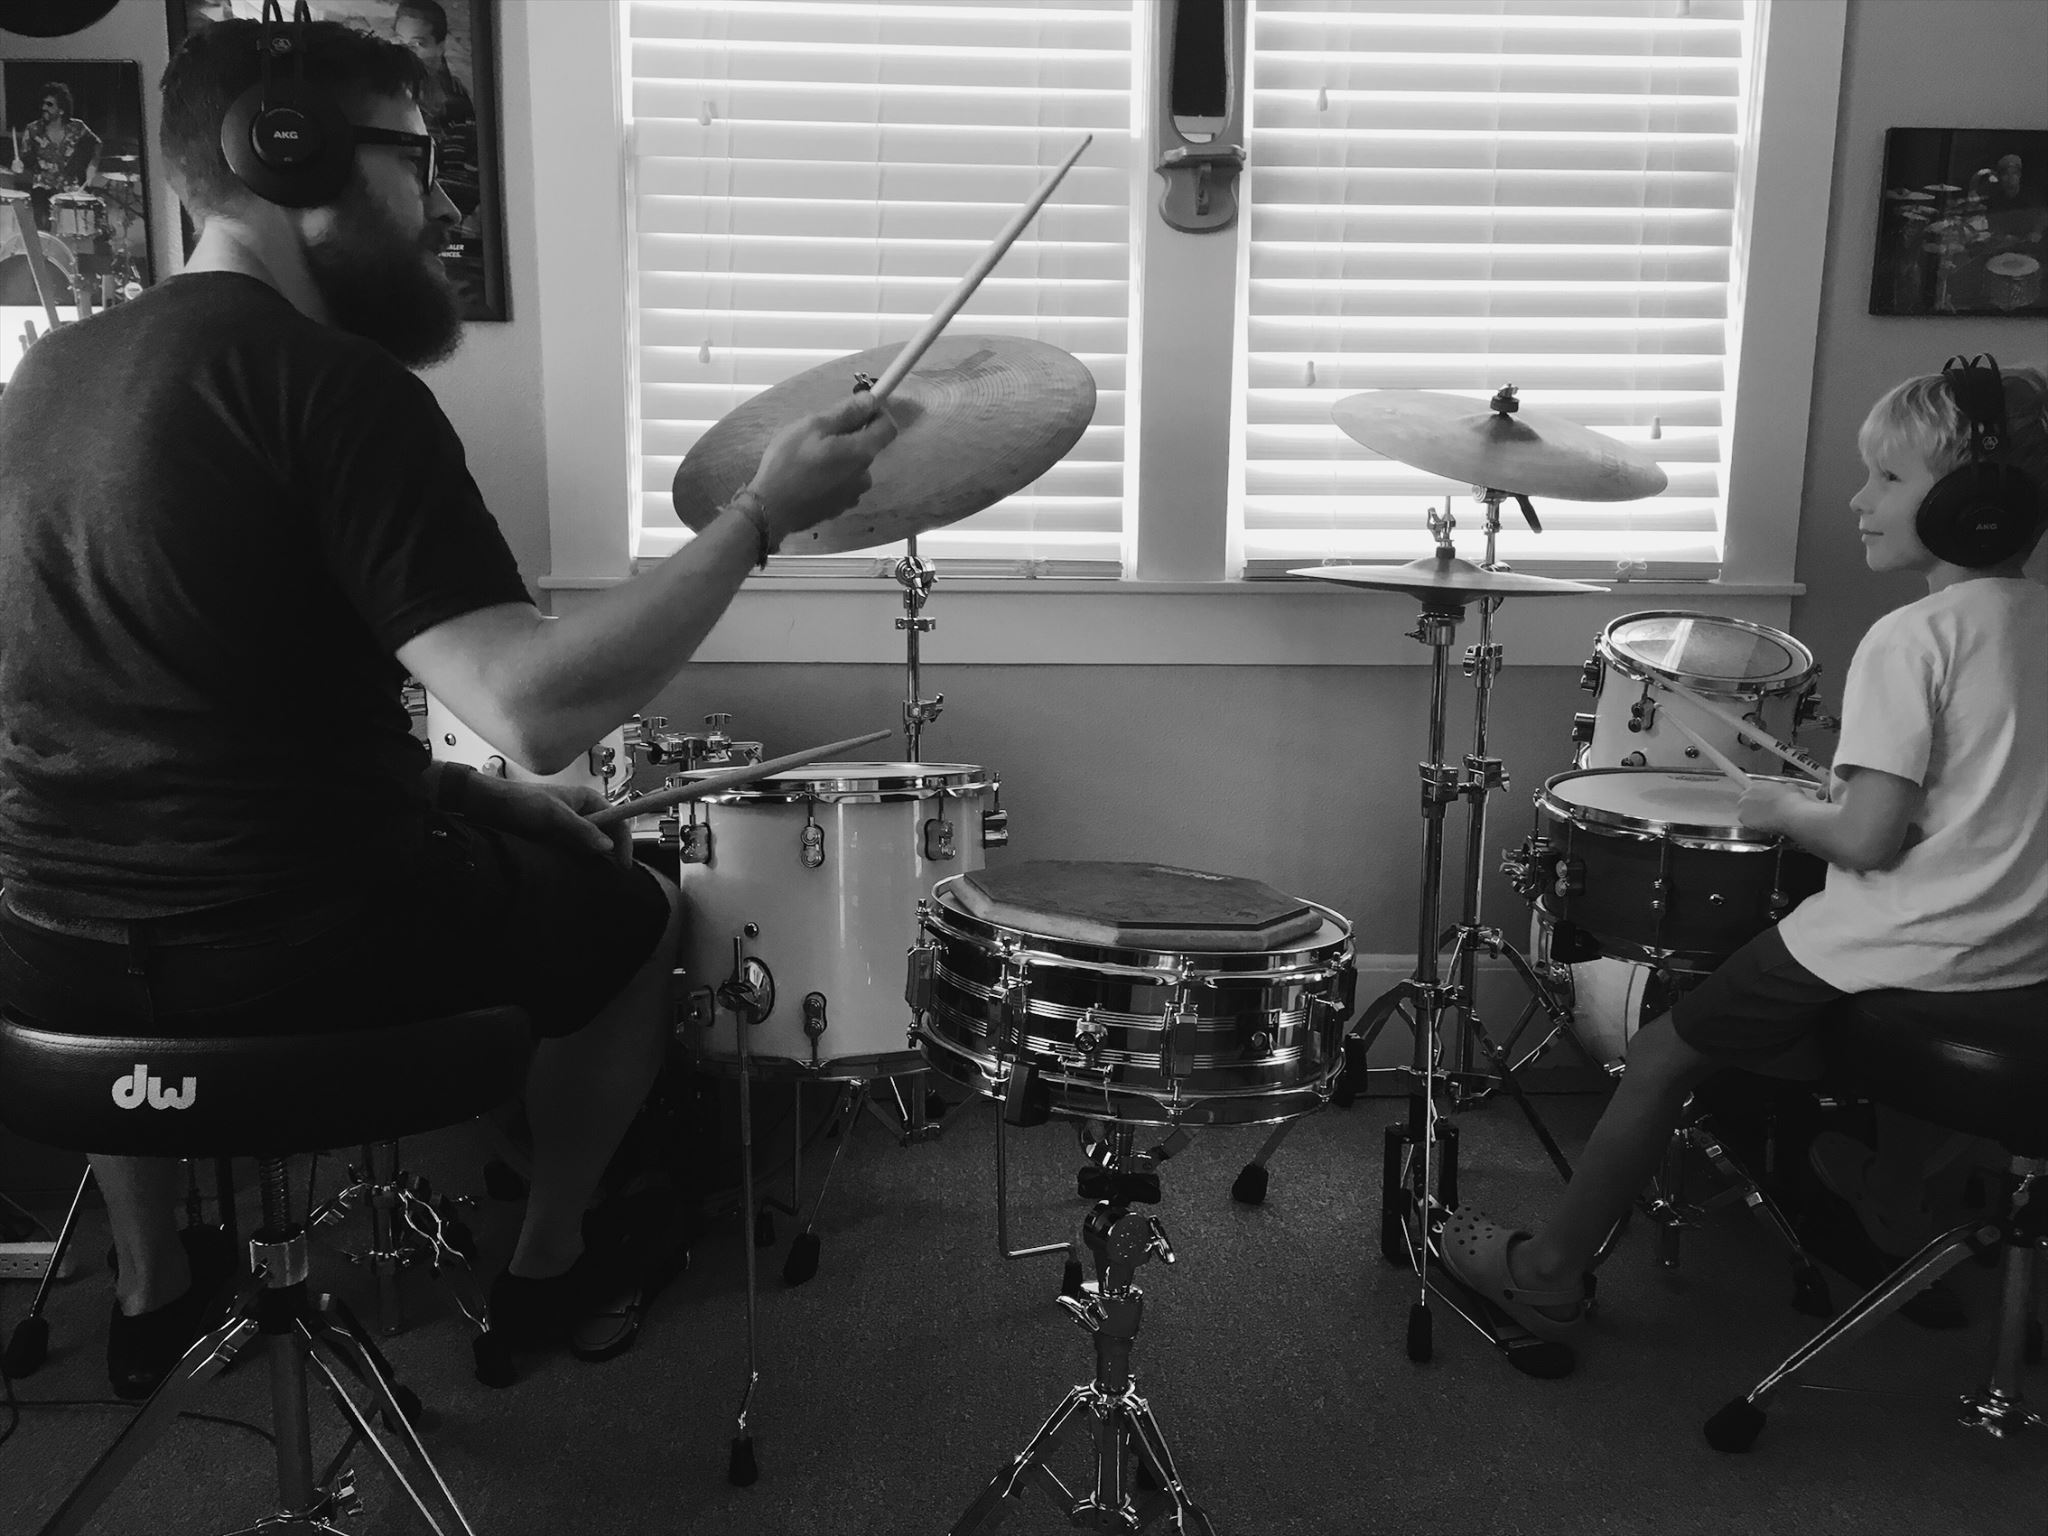 PRIVATE LESSONS - DRUMS • GUITAR • BASS • PIANO • VOICEALL AGES & LEVELS: lessons covering essential repertoire and methods CREATED FOR your unique needs, interests and learning style.